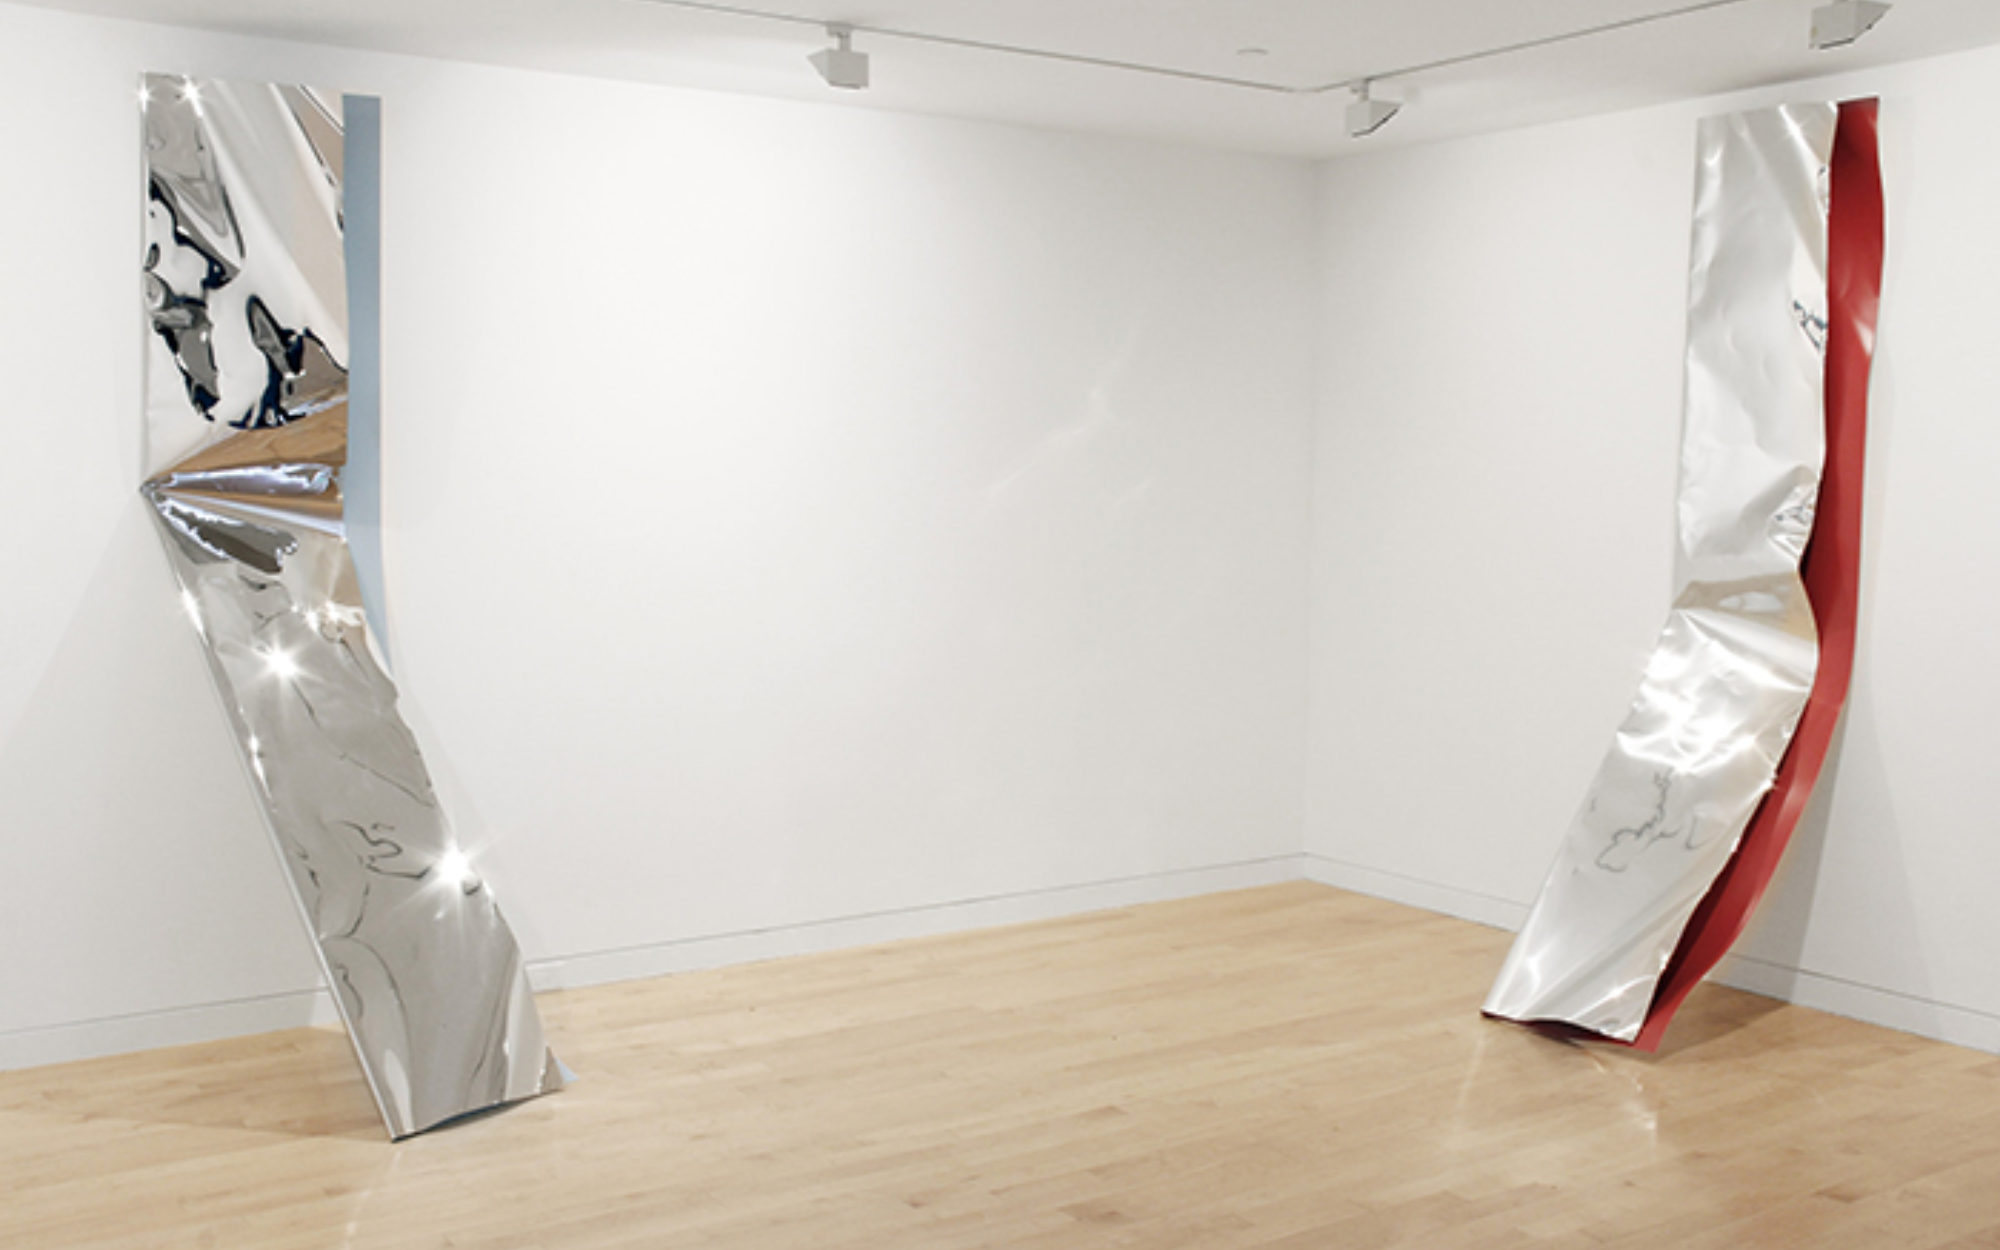 Two crushed metal pieces lean against the gallery walls